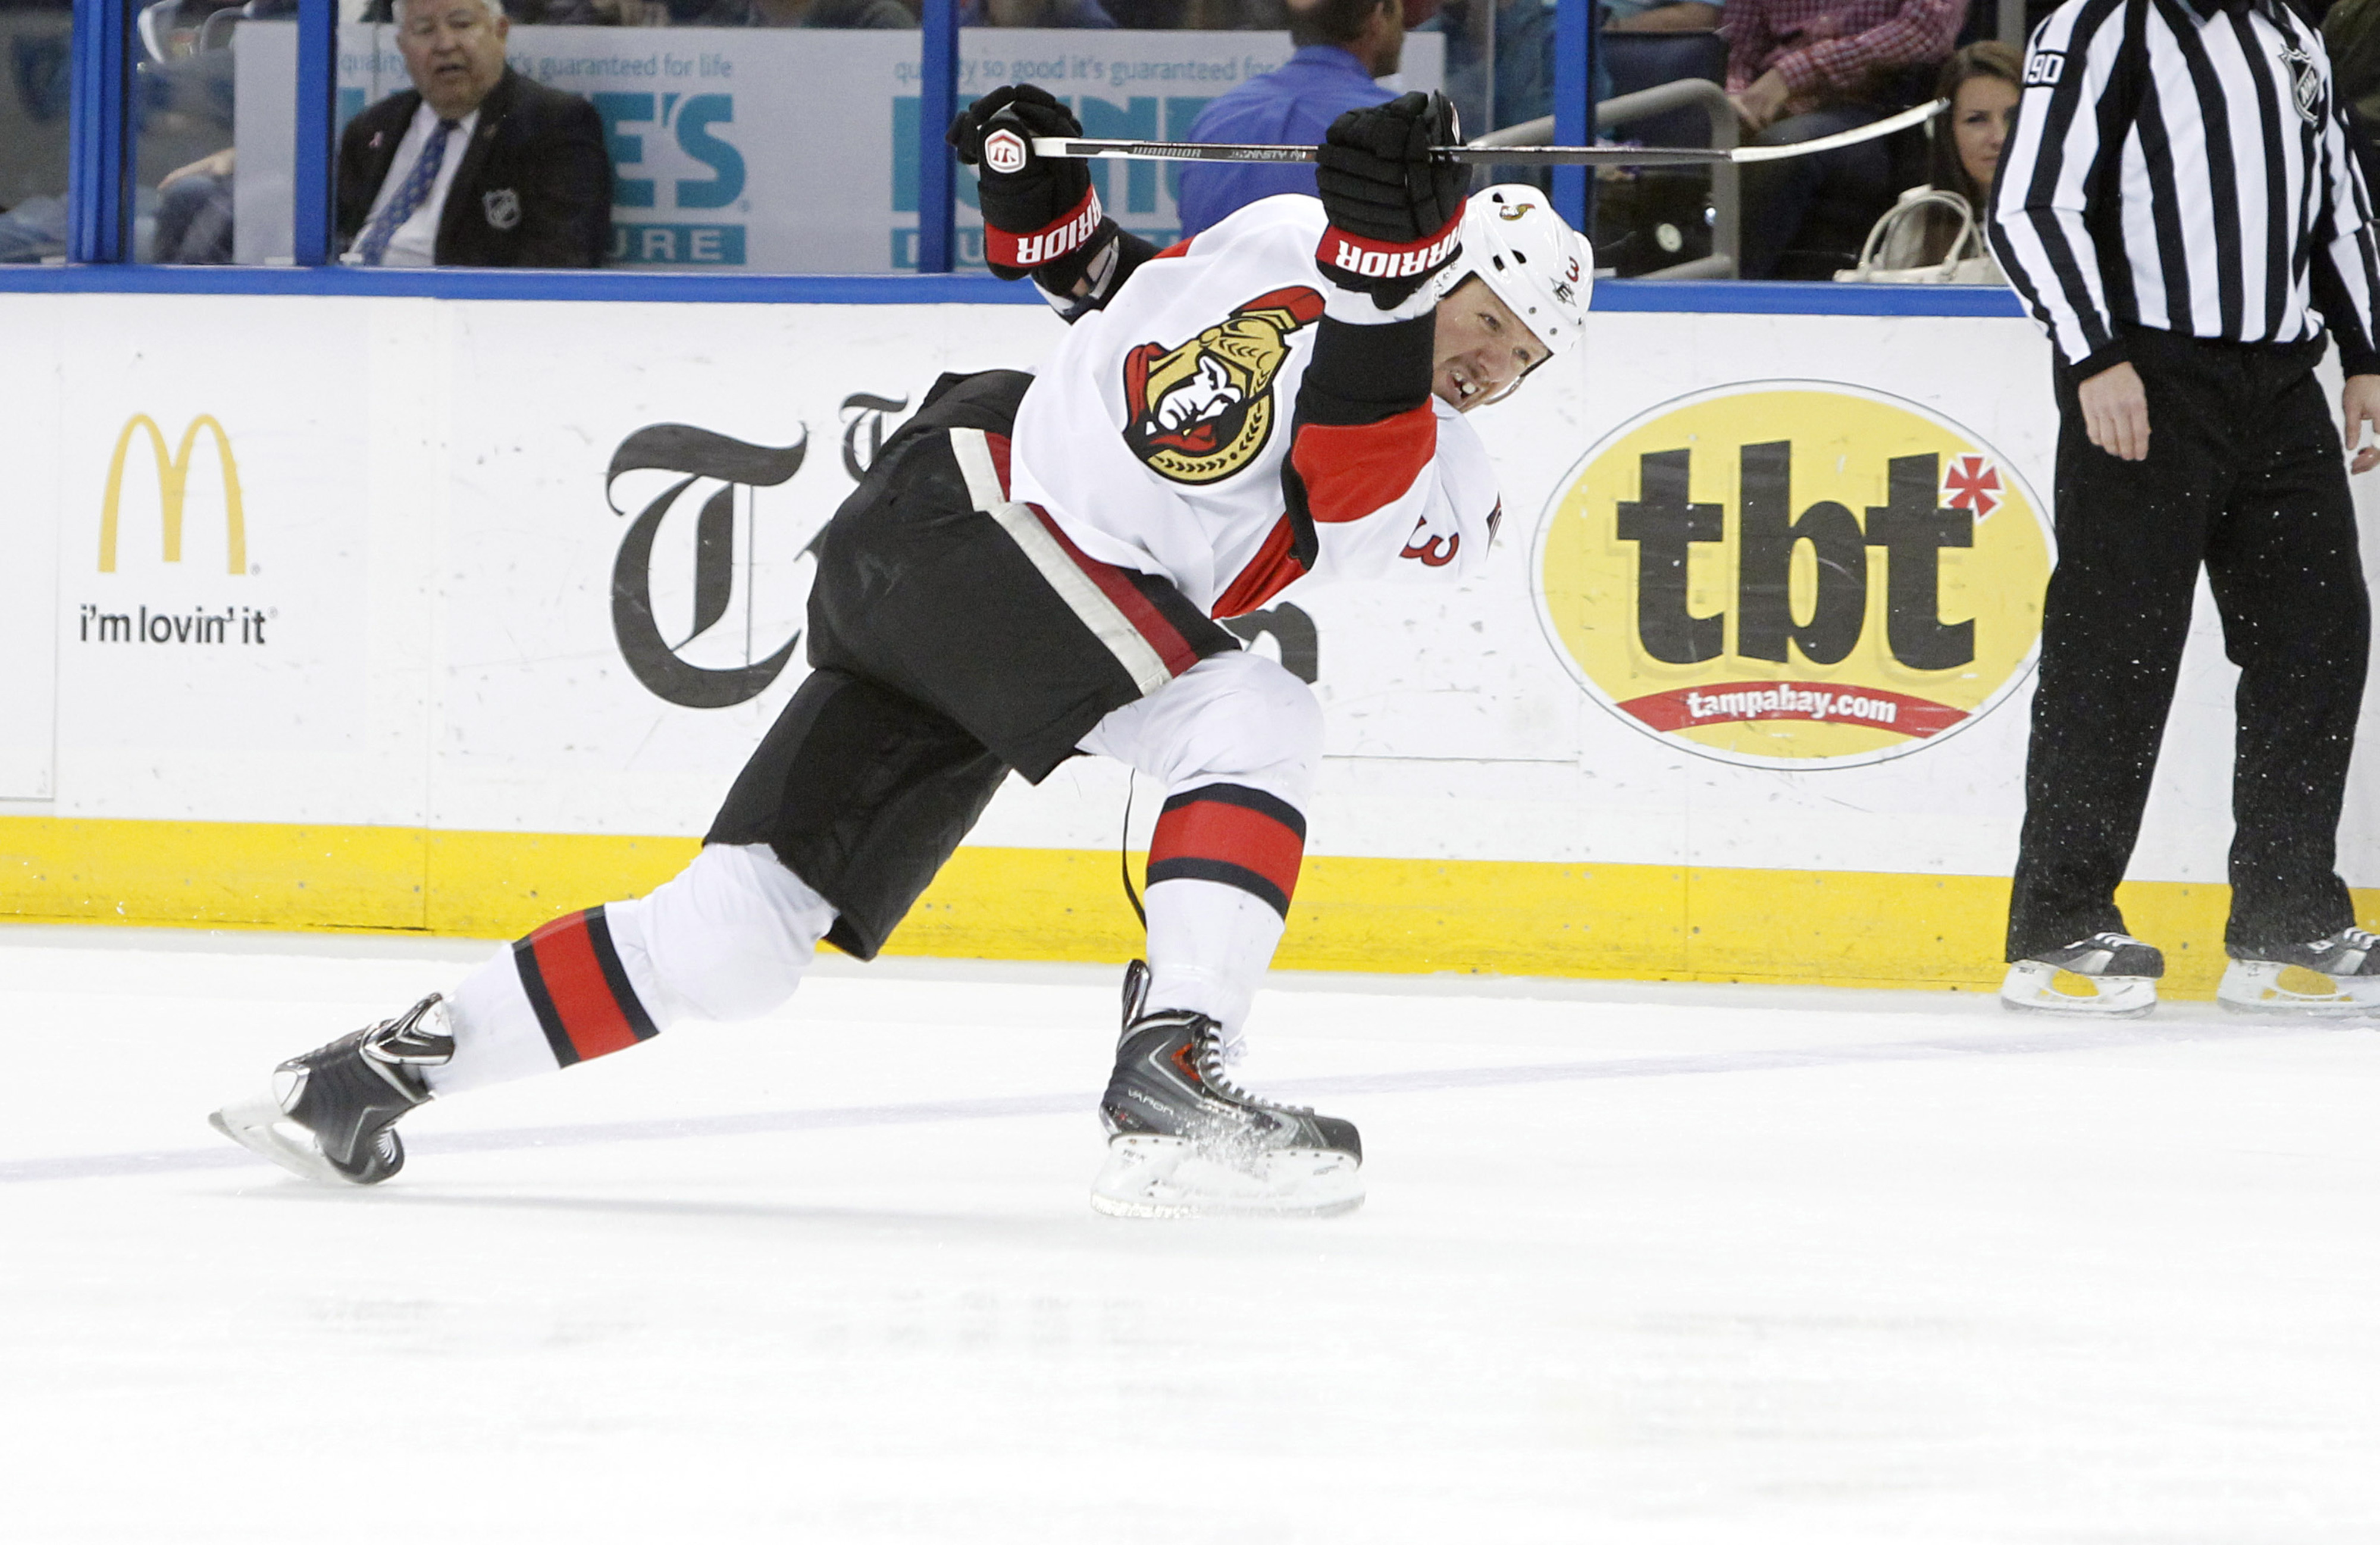 Marc Methot, practising for his post-retirement appearance on Battle of the Blades.